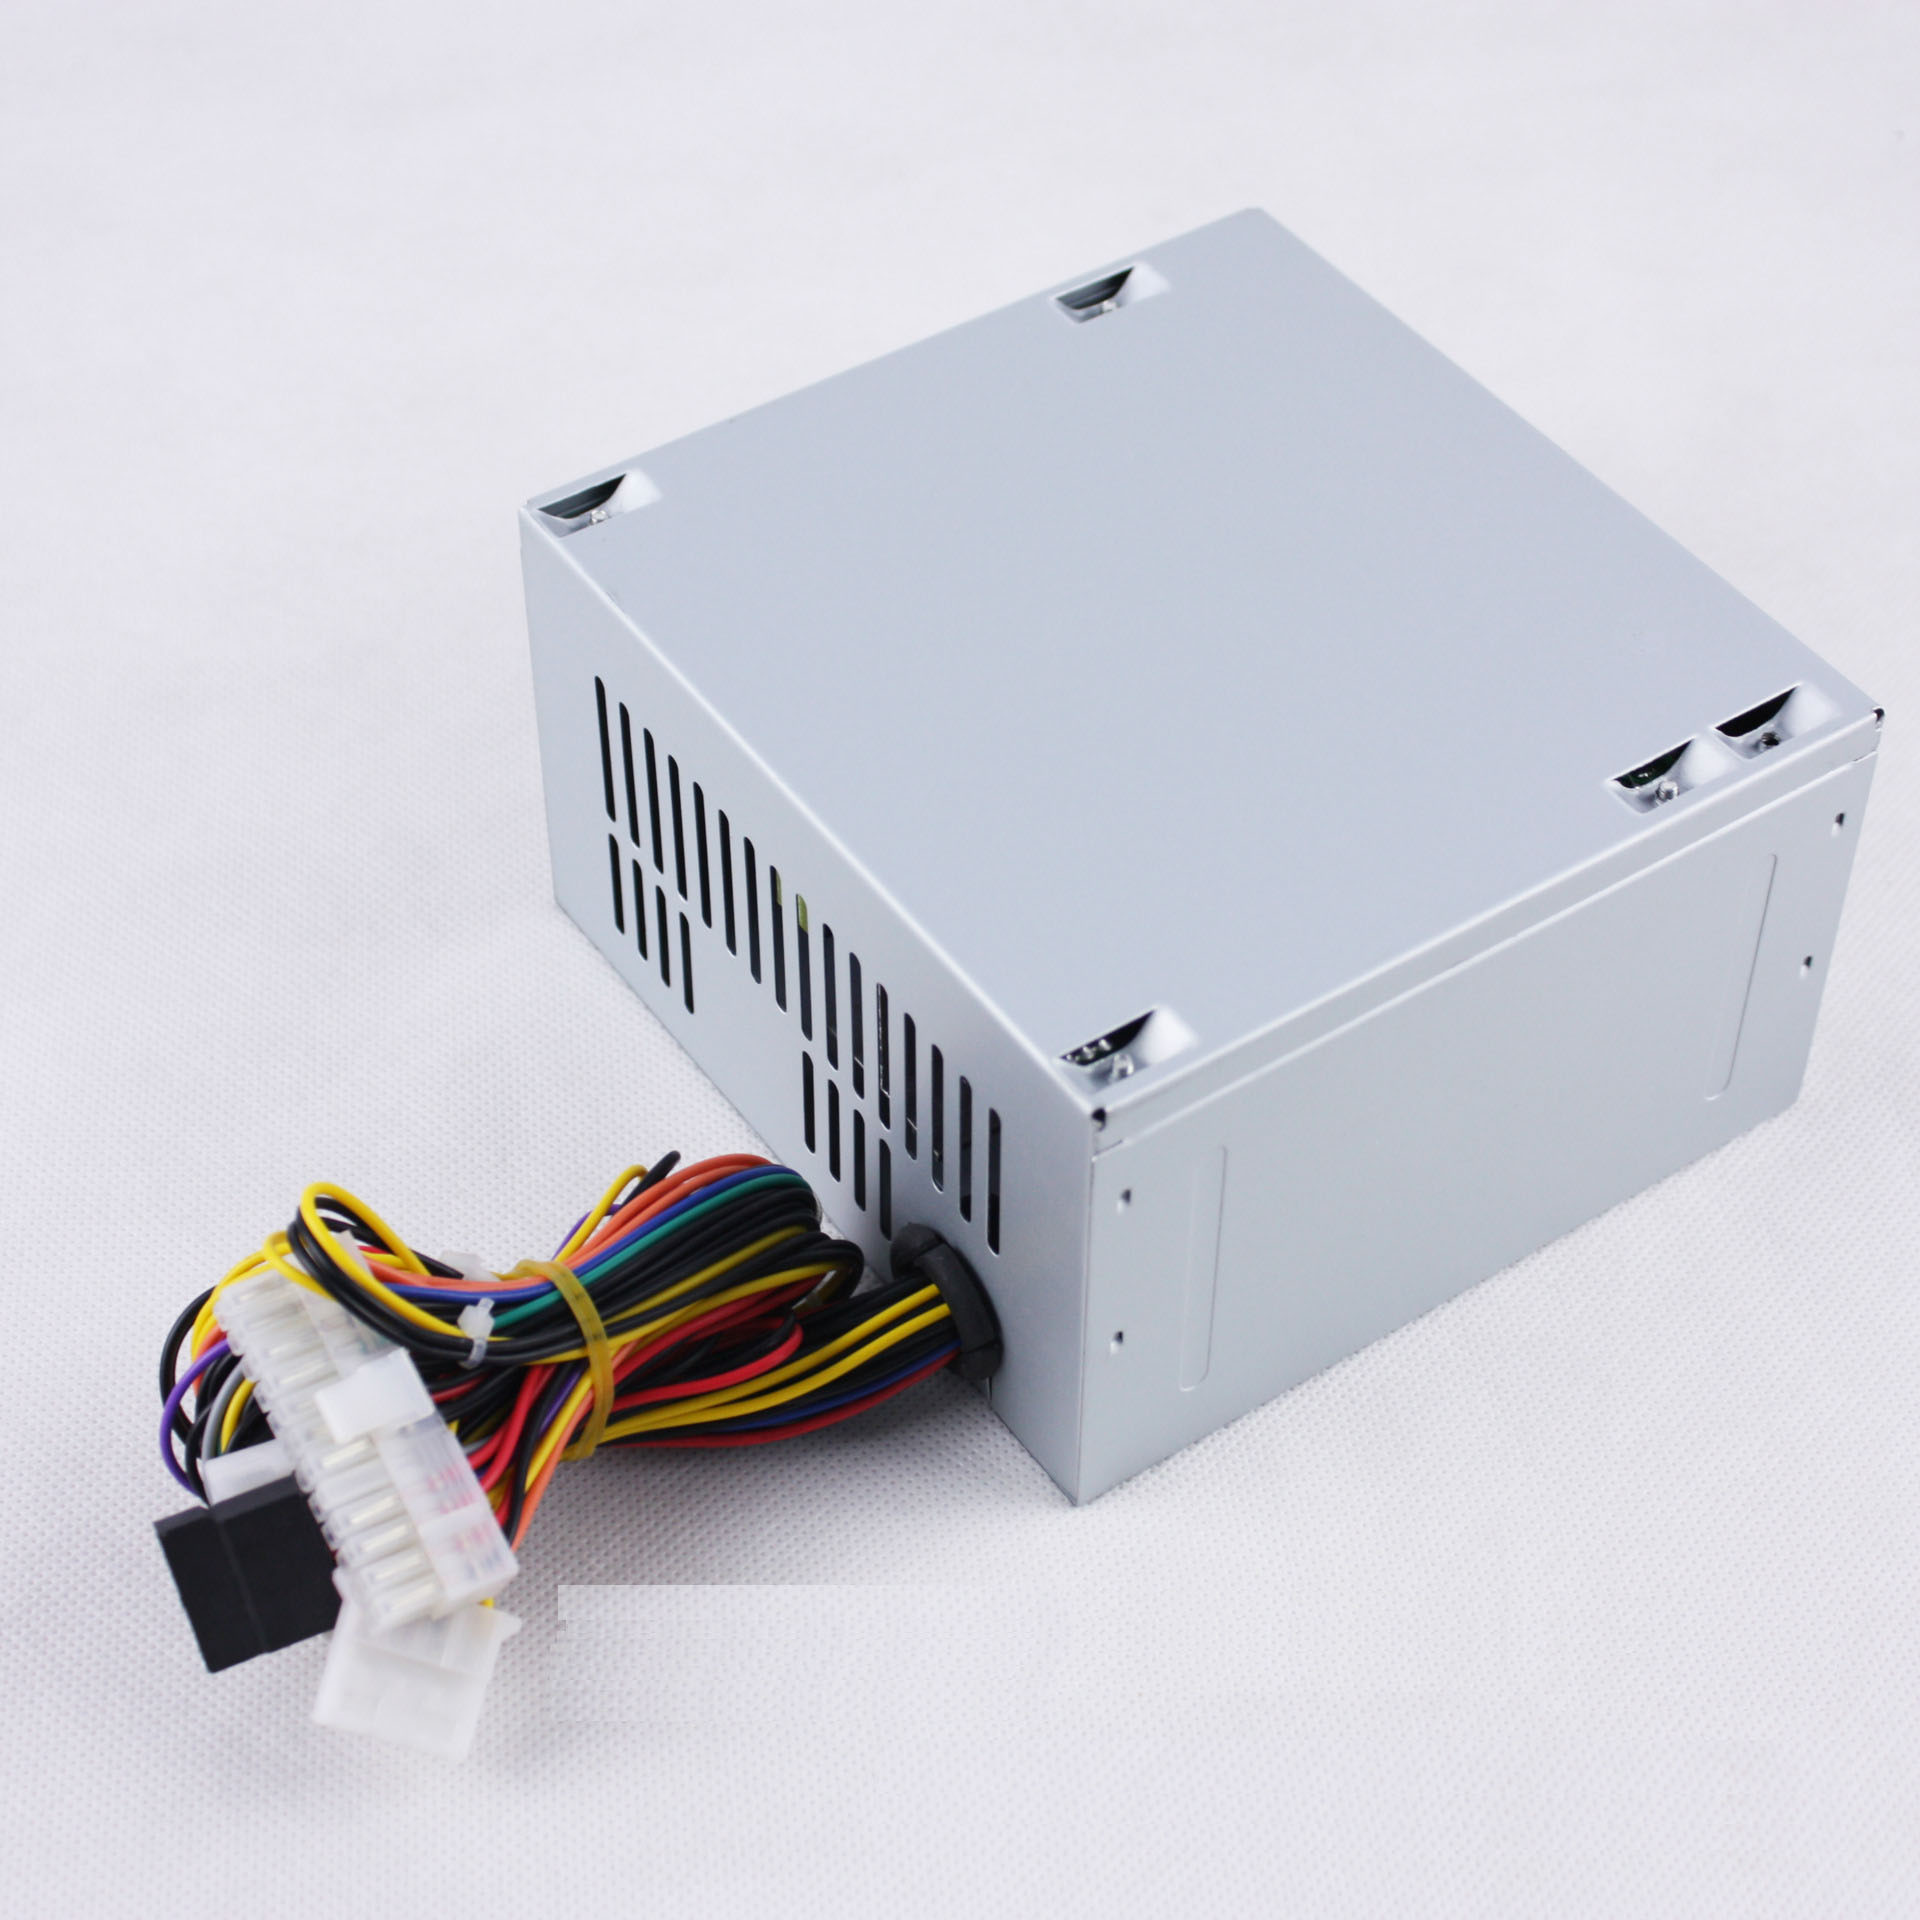 Hot-selling Power Supply 500w -